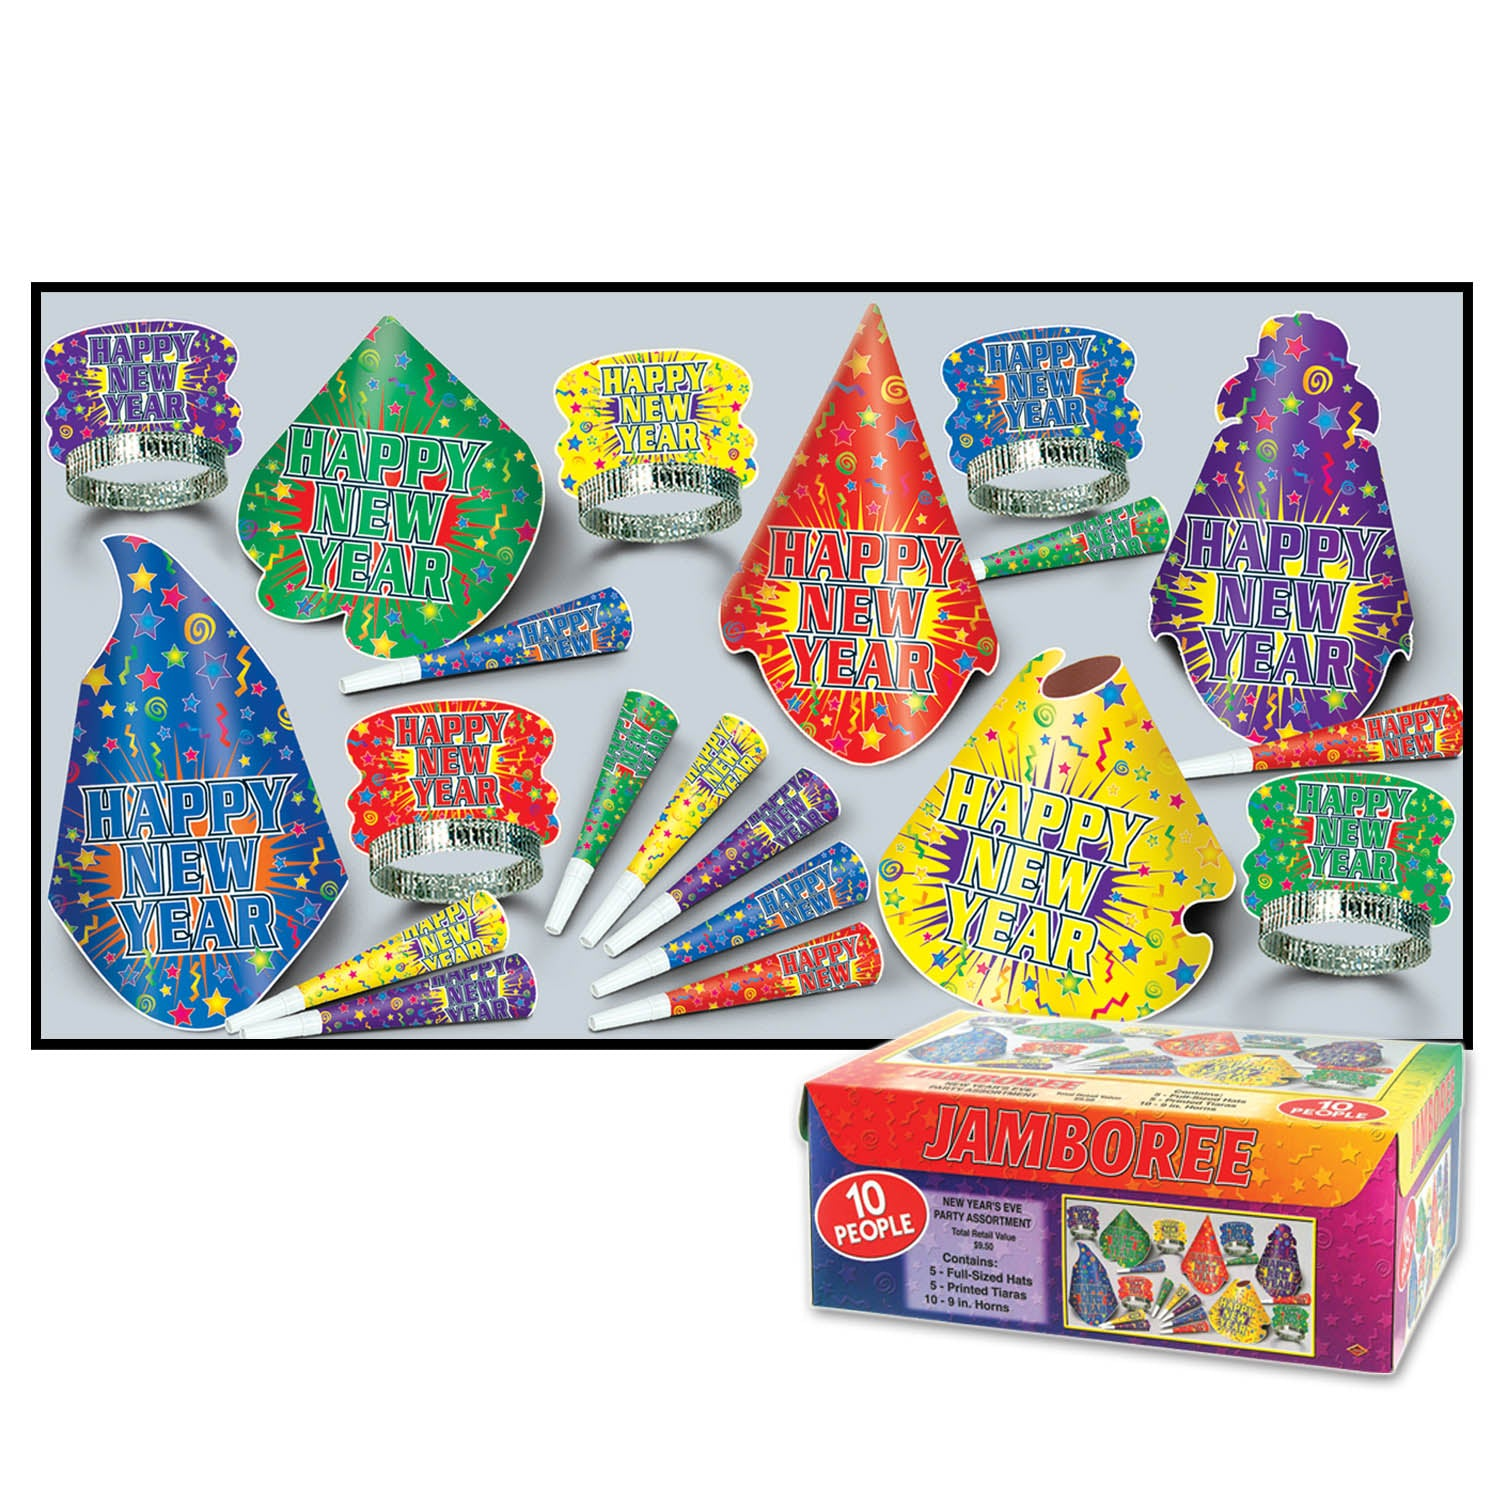 Jamboree Assortment for 10 by Beistle - New Year's Eve Theme Decorations